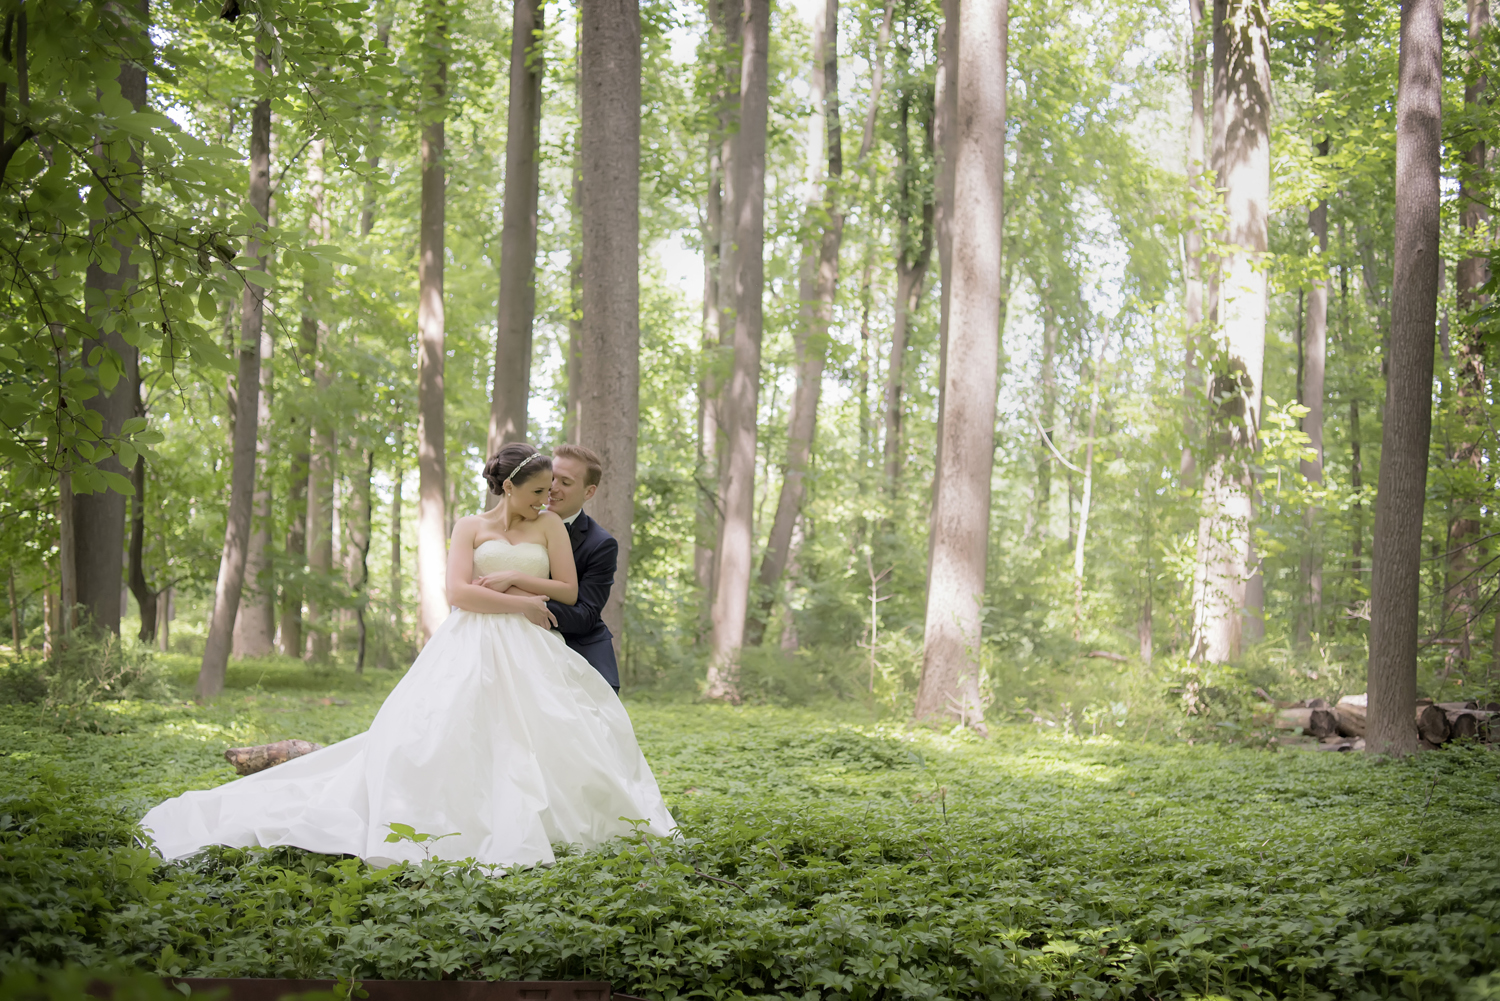 backyard wedding, bride and groom in the woods. NJ wedding photos